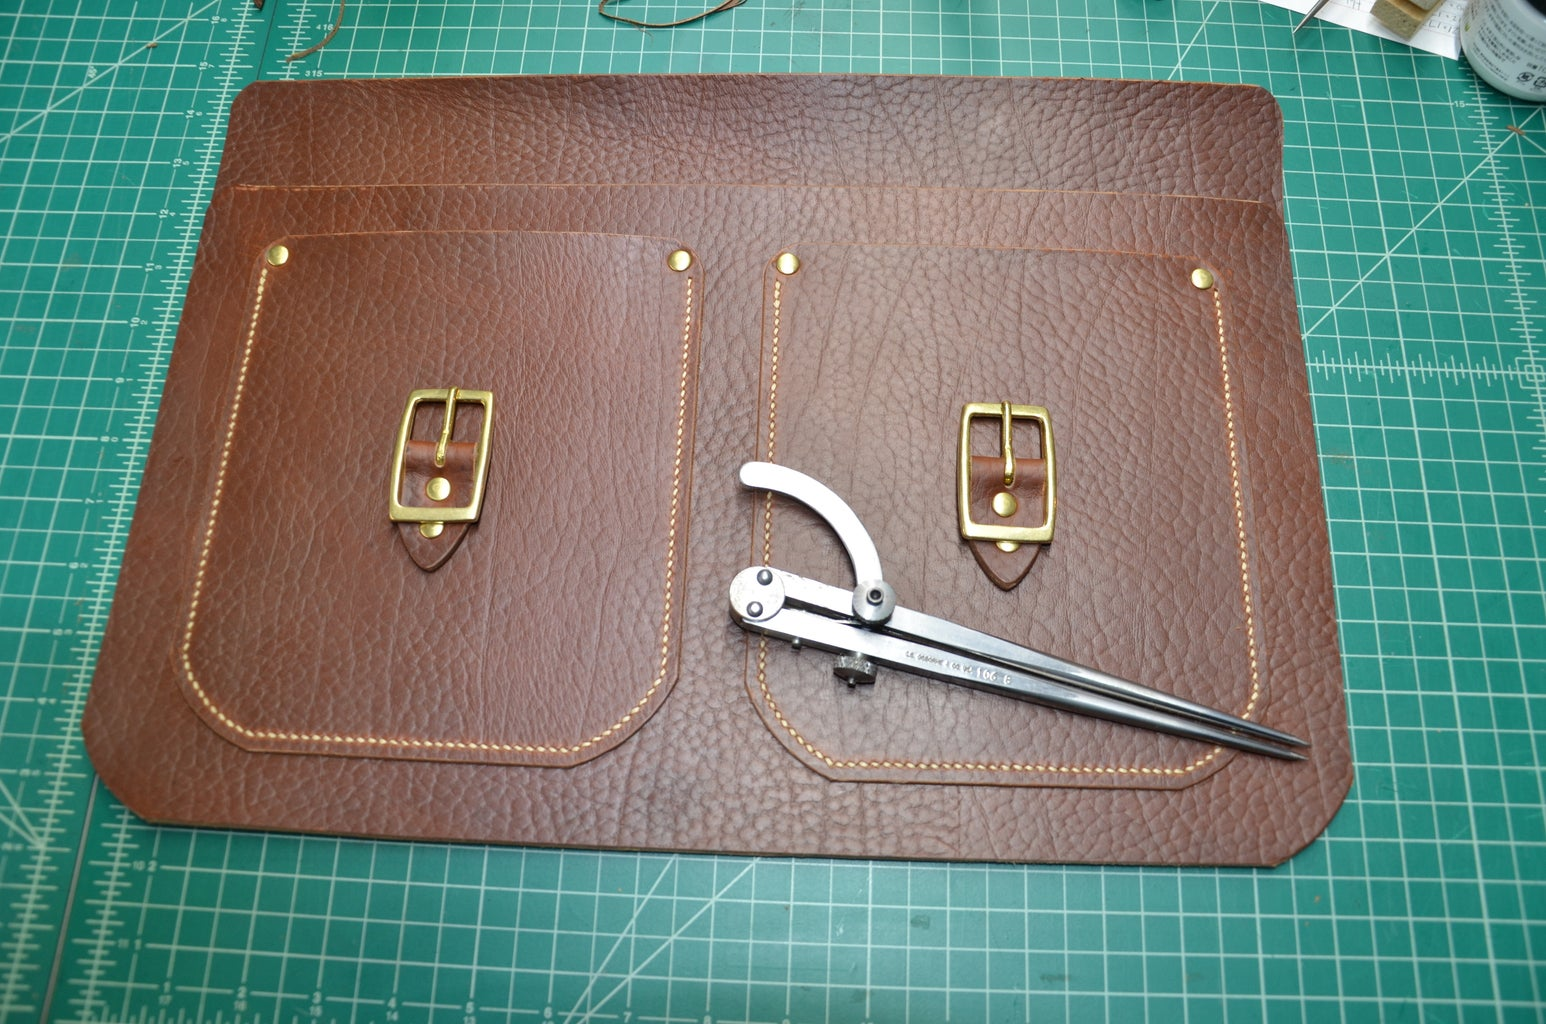 Step 9: Punch Stitching Holes